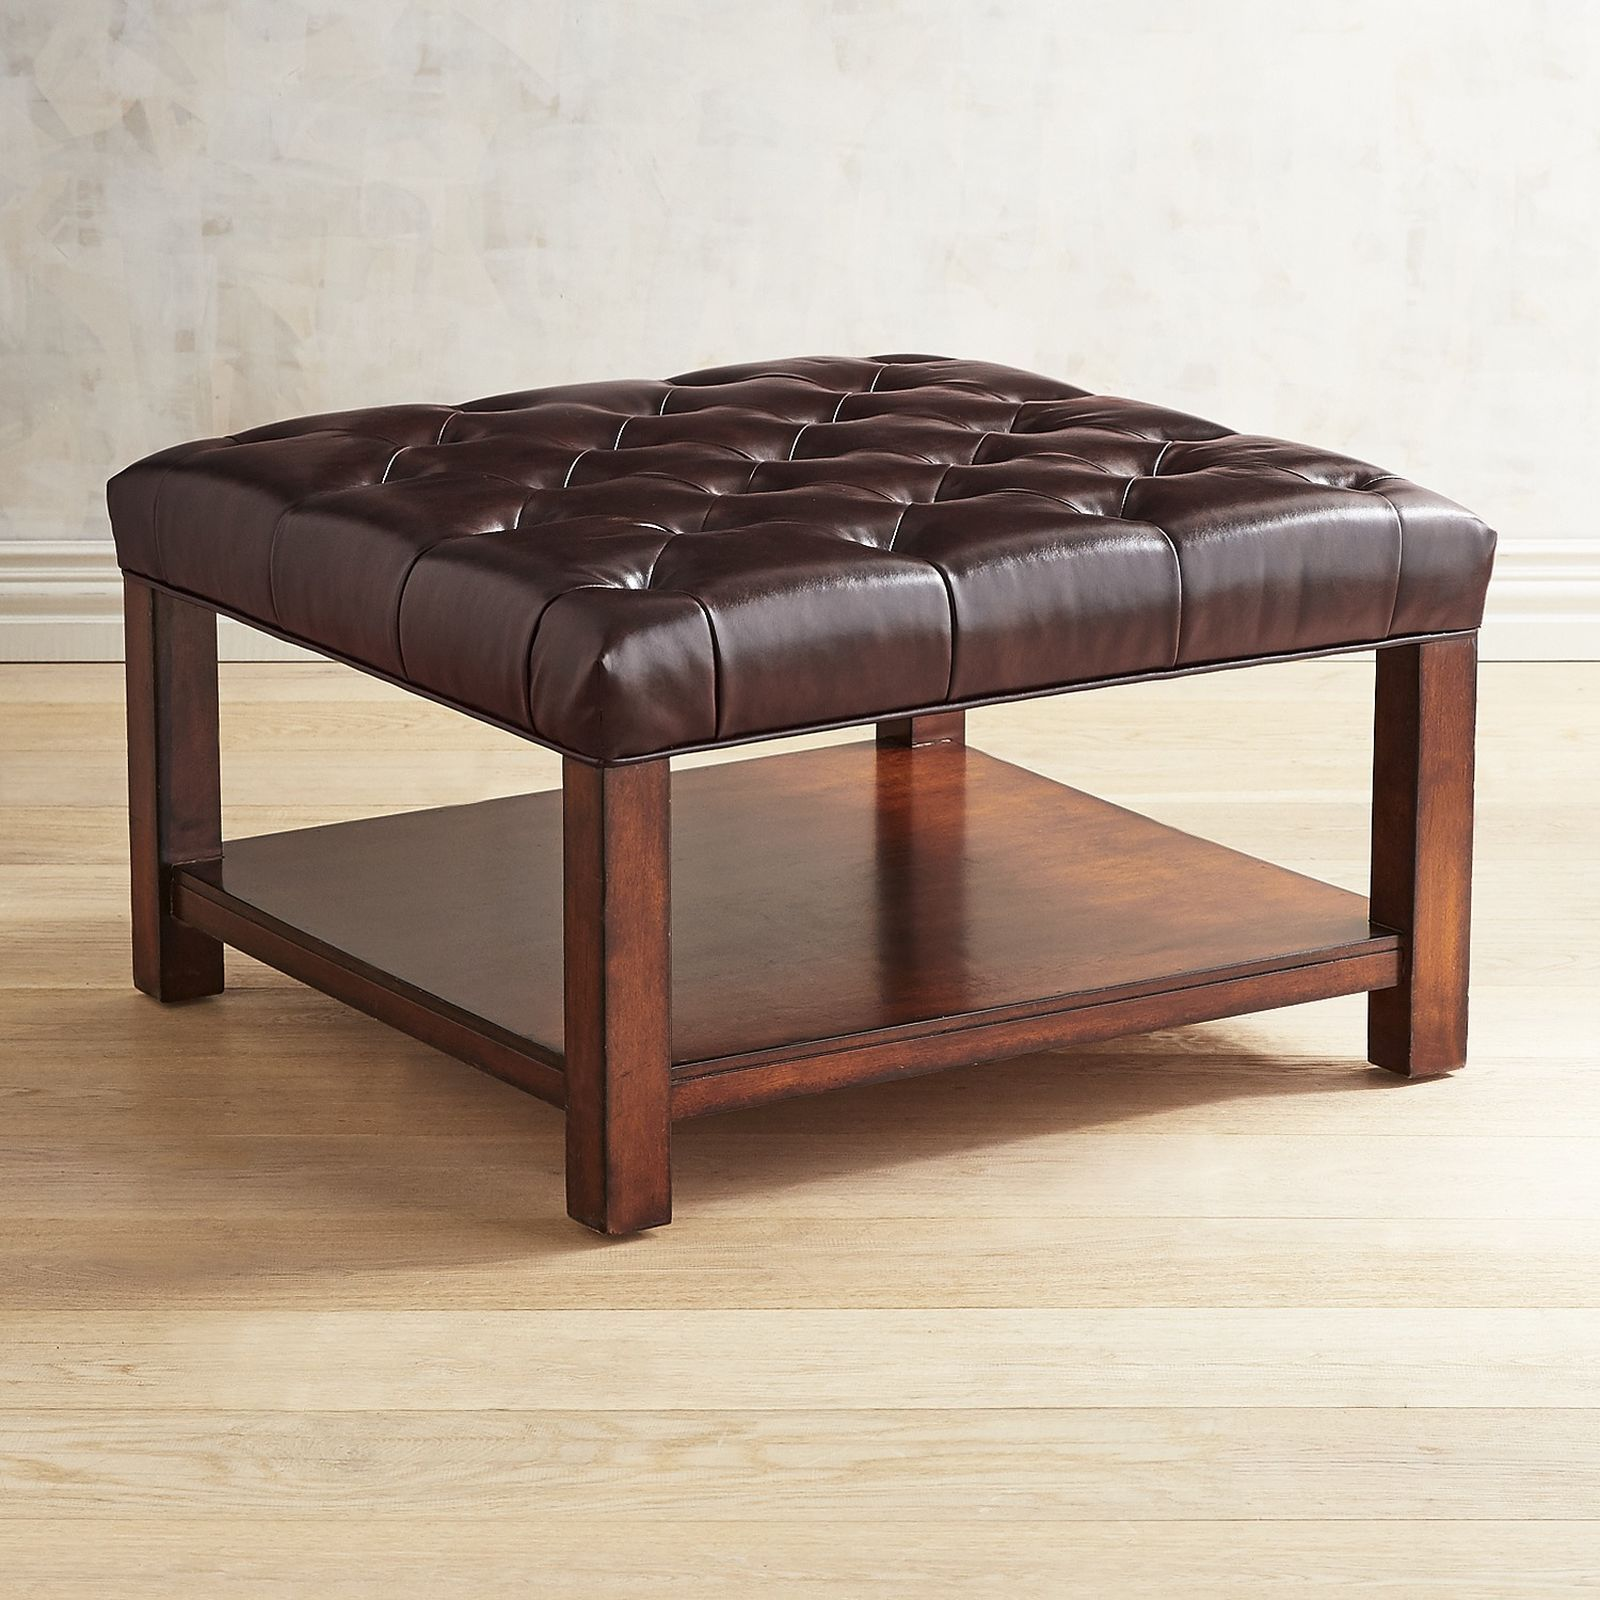 Liard Java Brown Square Cocktail Ottoman - Pier 1 Imports